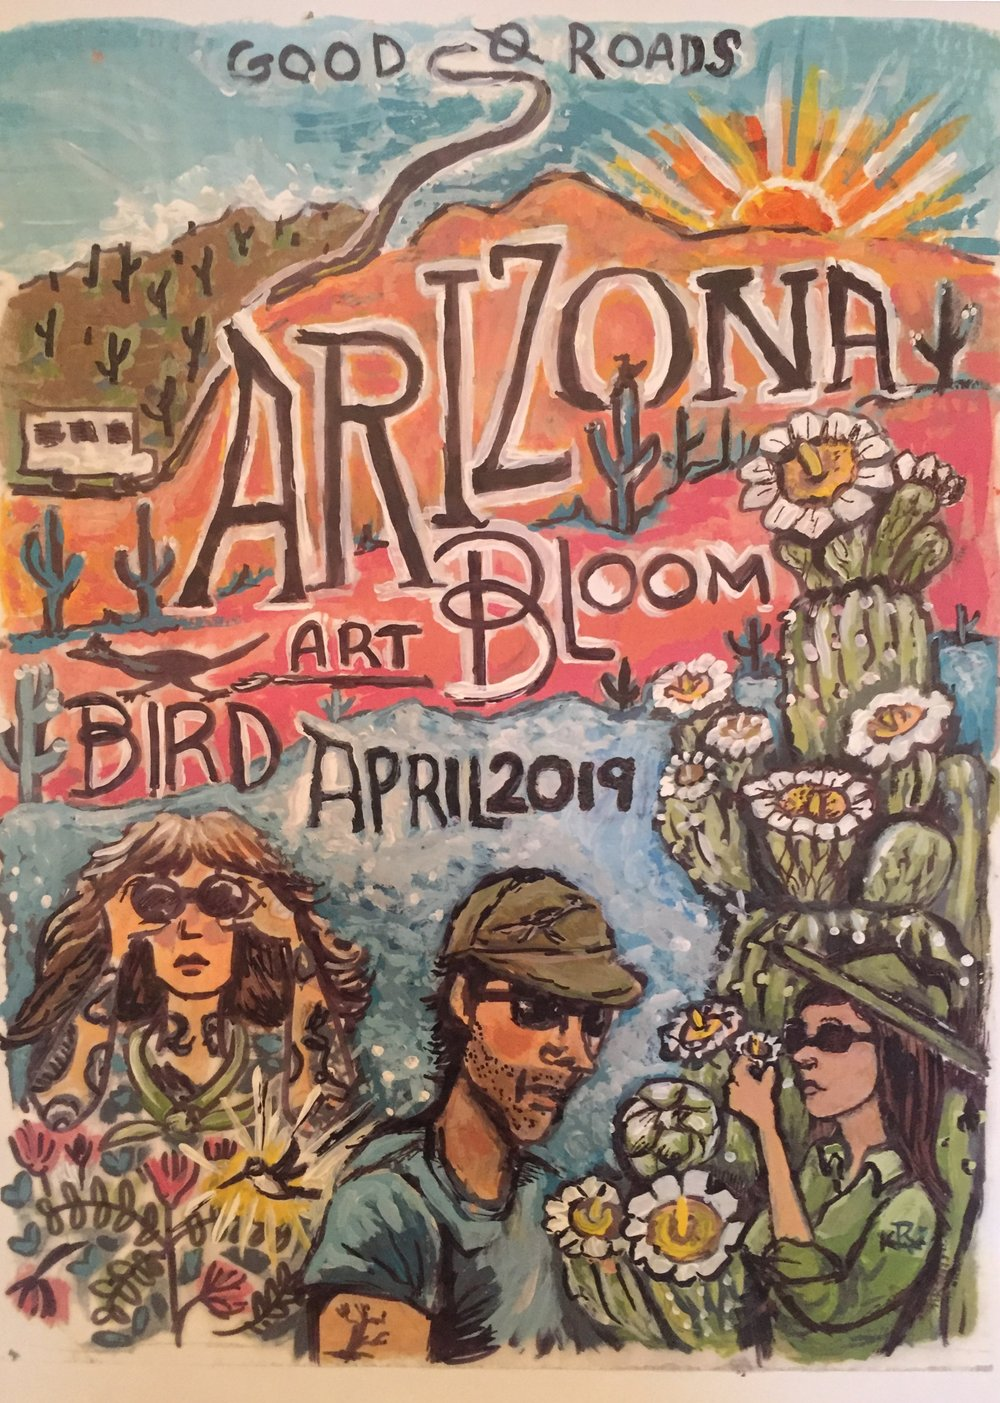 "stay tuned! - Arizona Bird Art Bloom - April 2019with @deerjerk and @folkmasses—""Southeastern Arizona, where isolated mountain ranges rear up like islands in a sea of desert grassland, lures you with more than 400 species, including dozens that spill across the border from Mexico."" @audubonsociety"